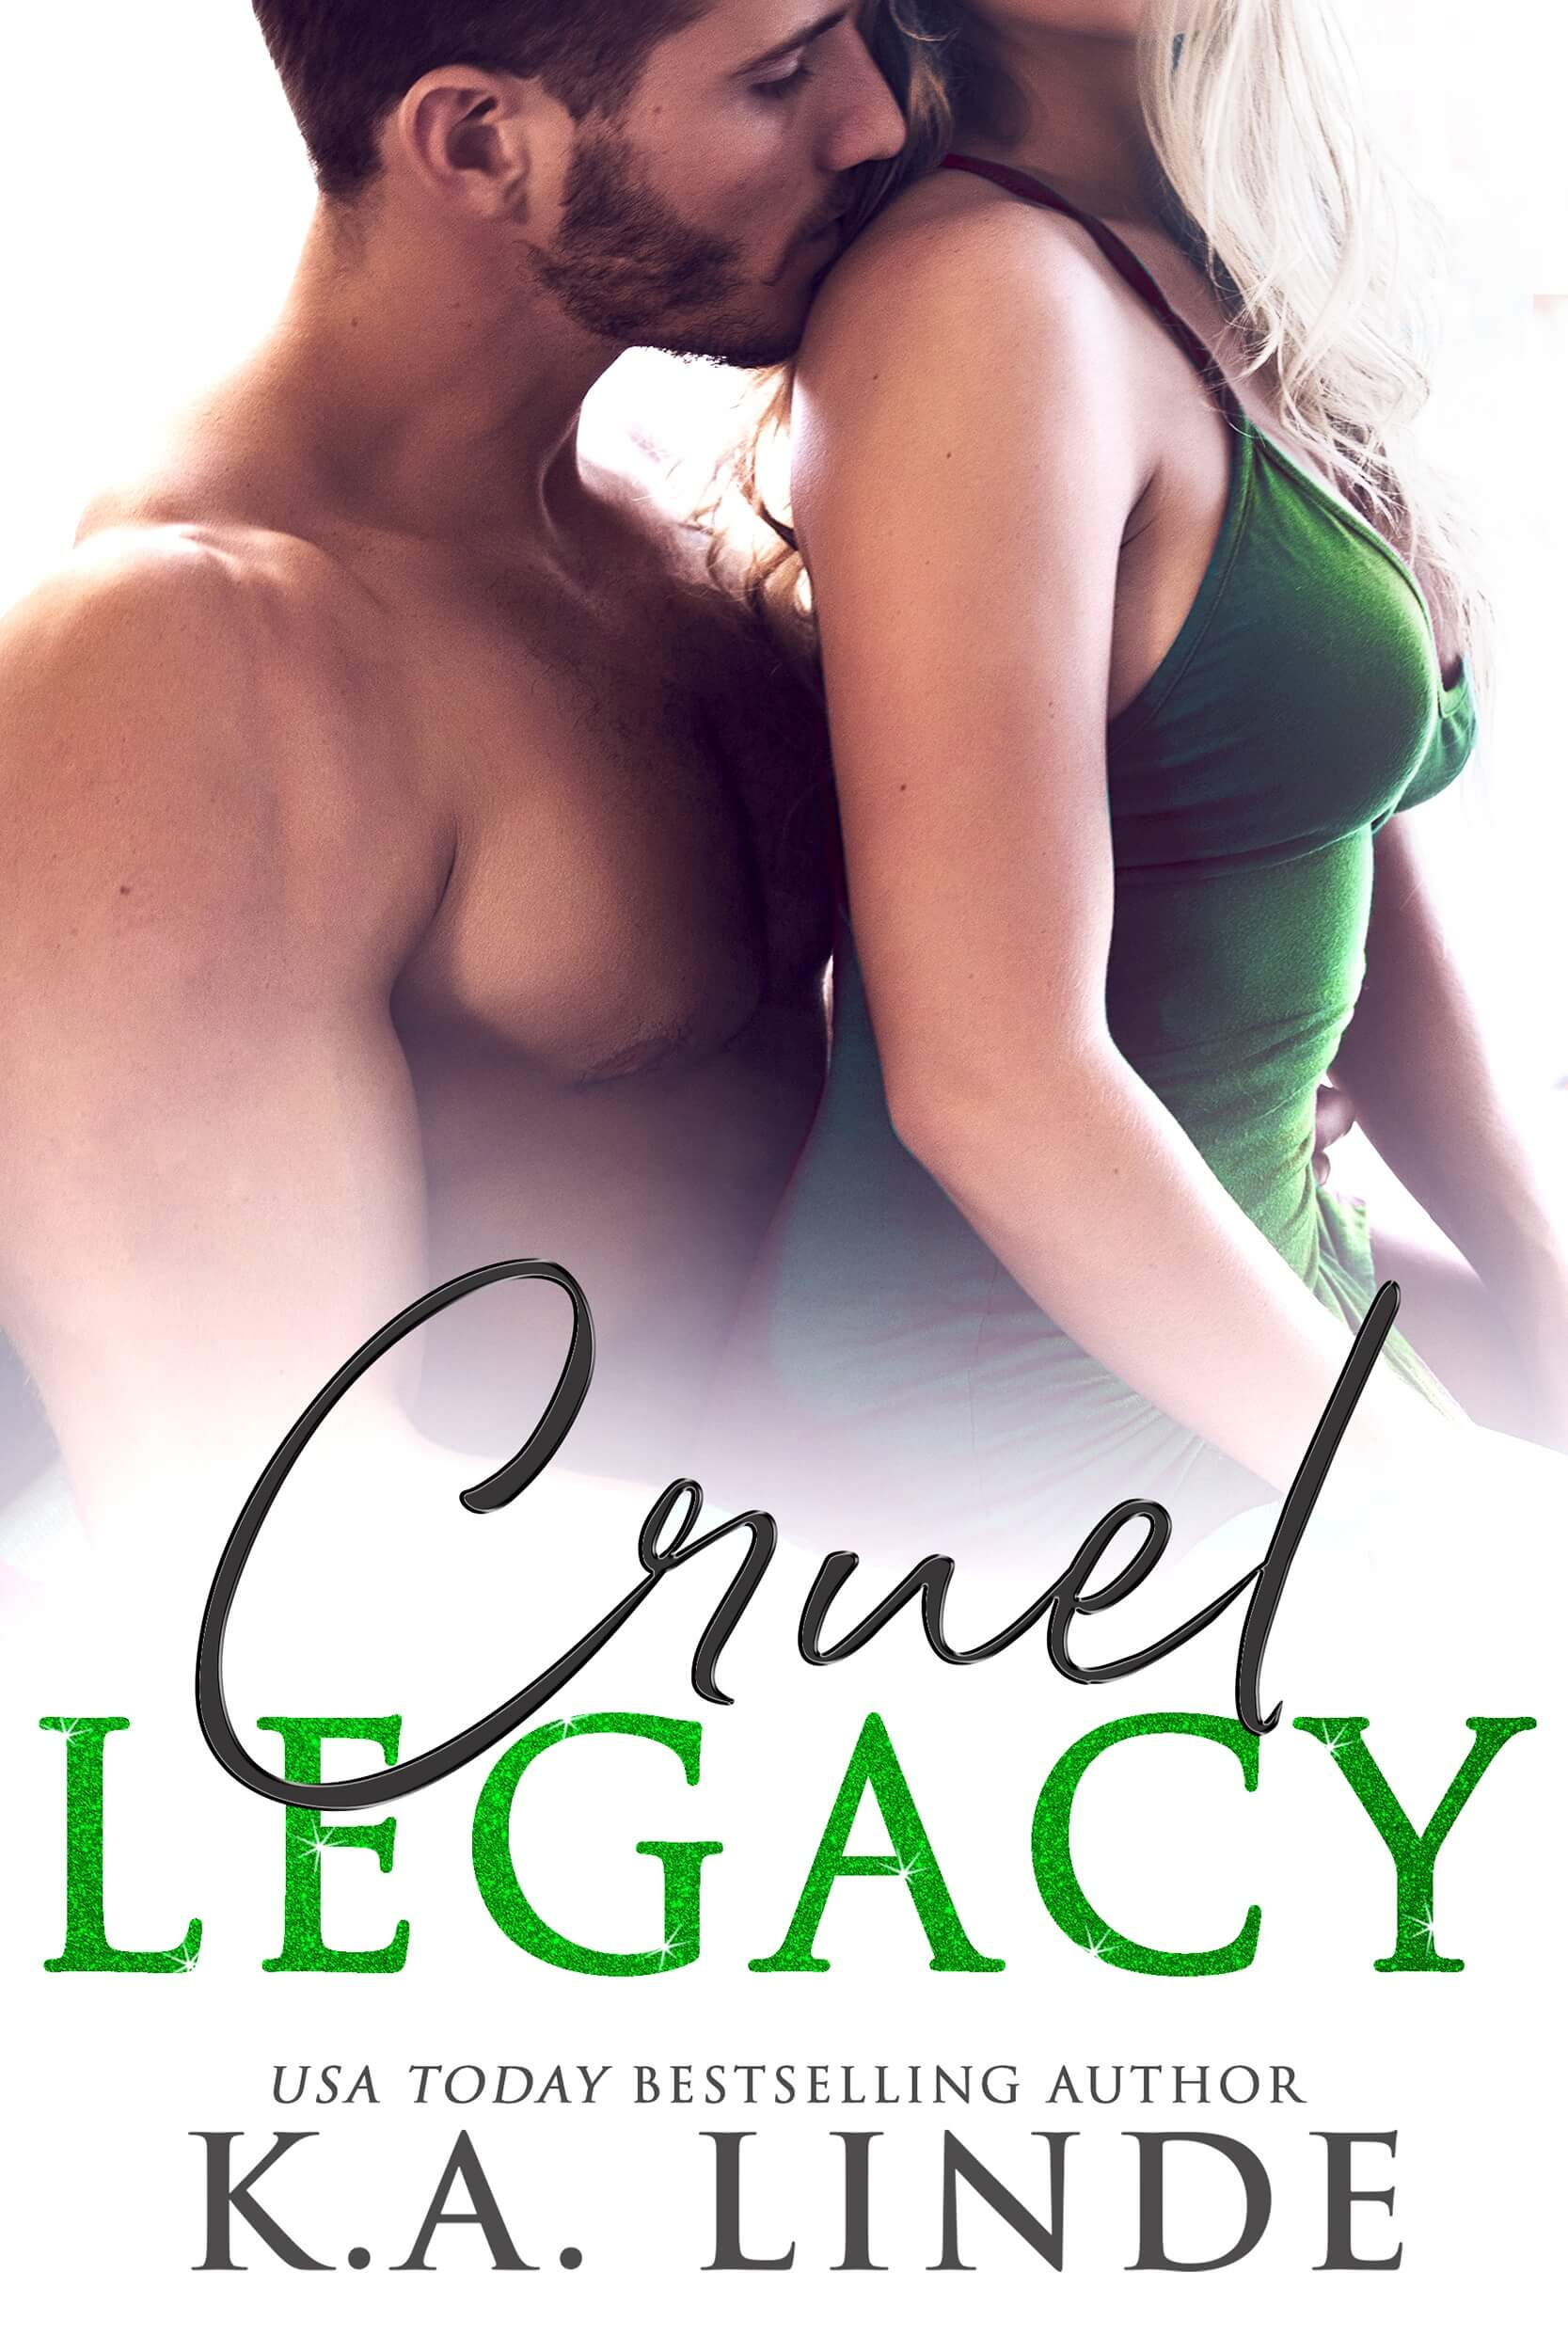 Cover Reveal * Cruel Legacy (Cruel trilogy book 3) by KA Linde  * Coming July 16th * PreOrder Now